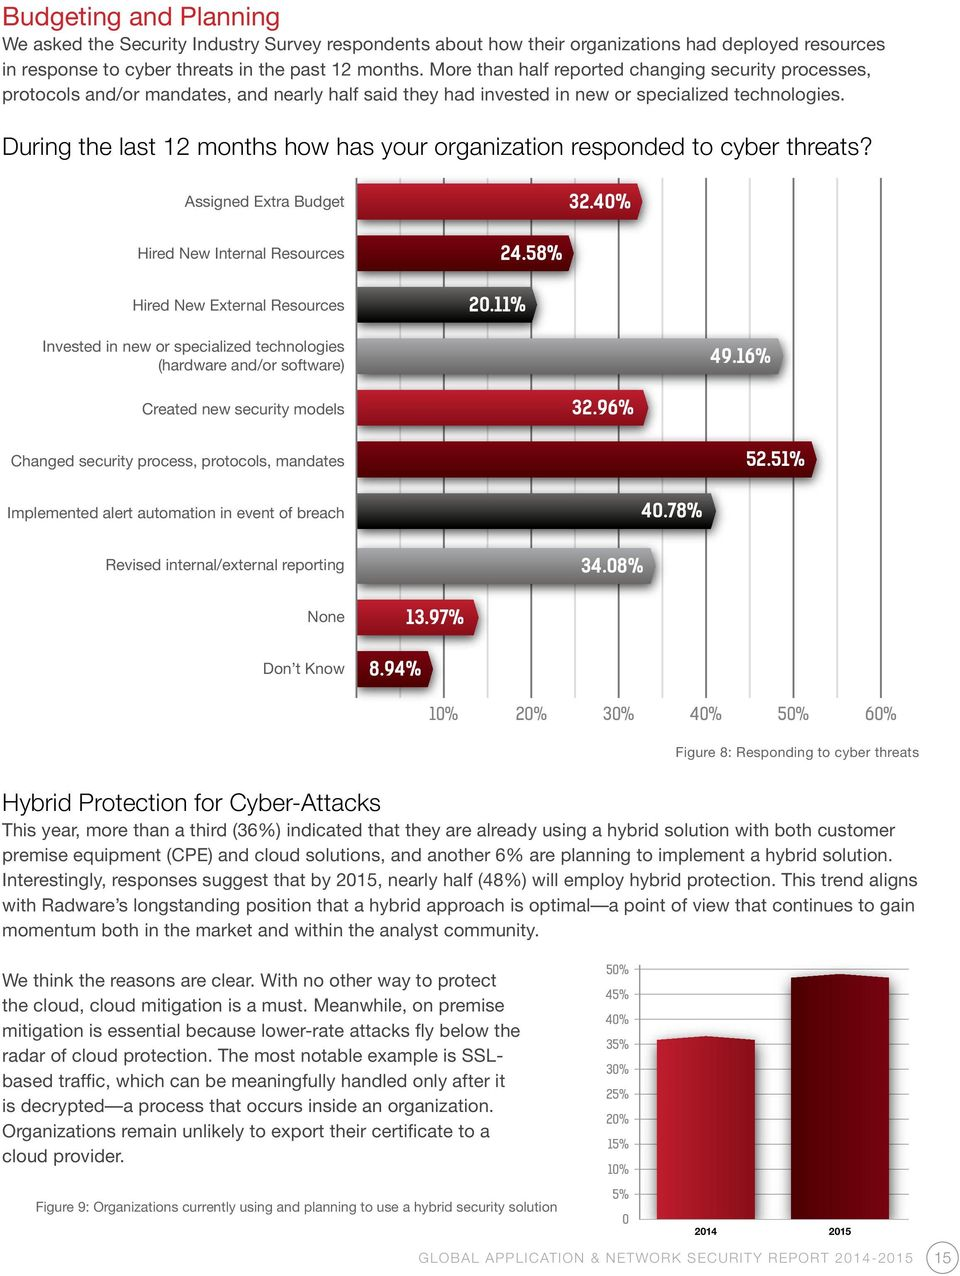 During the last 12 months how has your organization responded to cyber threats? Assigned Extra Budget 32.40% Hired New Internal Resources Hired New External Resources 20.11% 24.